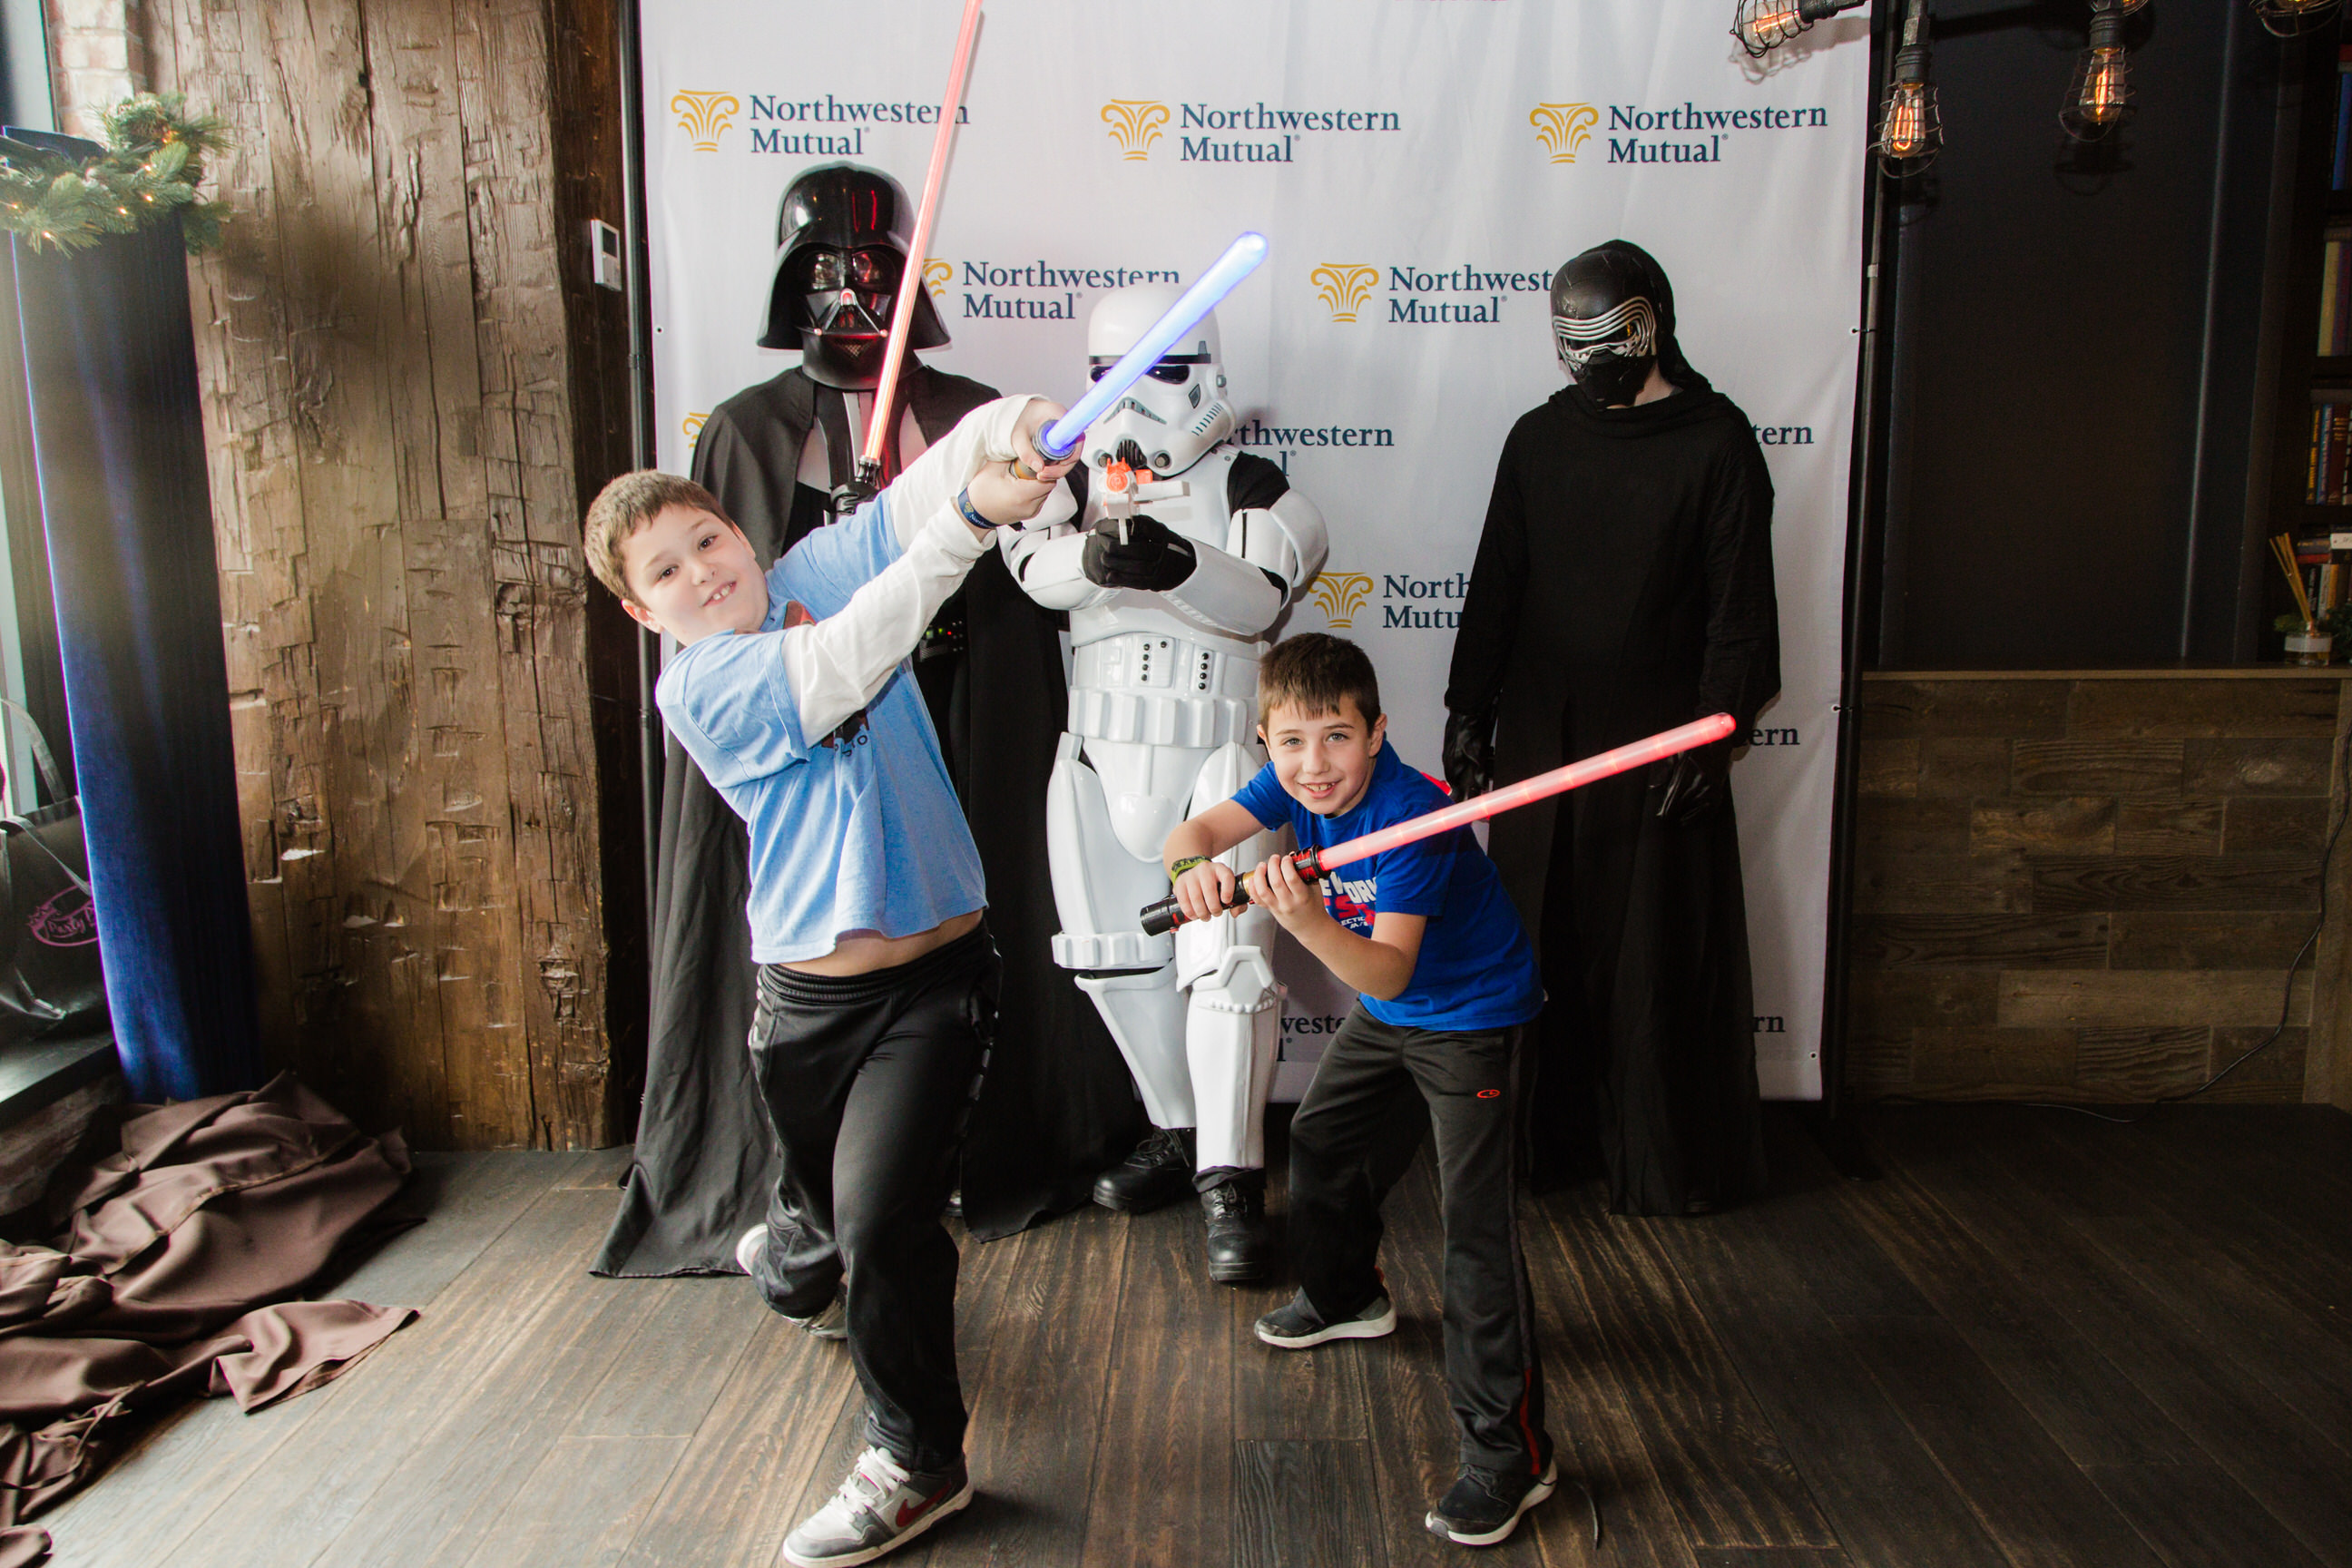 NYC Corporate Event Photographer Northwestern Mutual Event